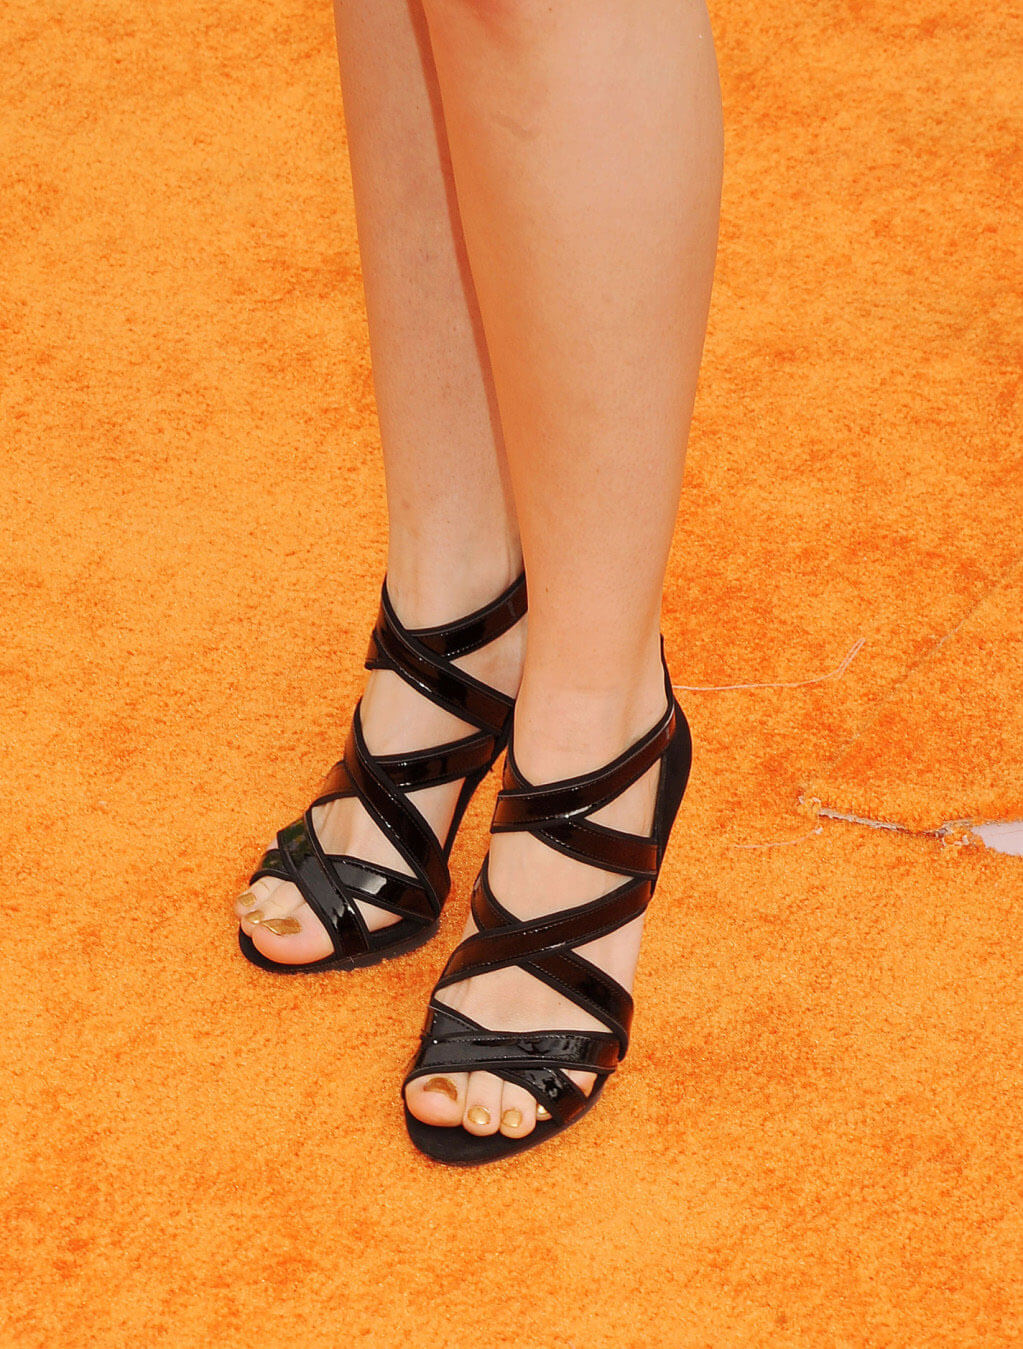 debby ryan Sexy Feet in high heels